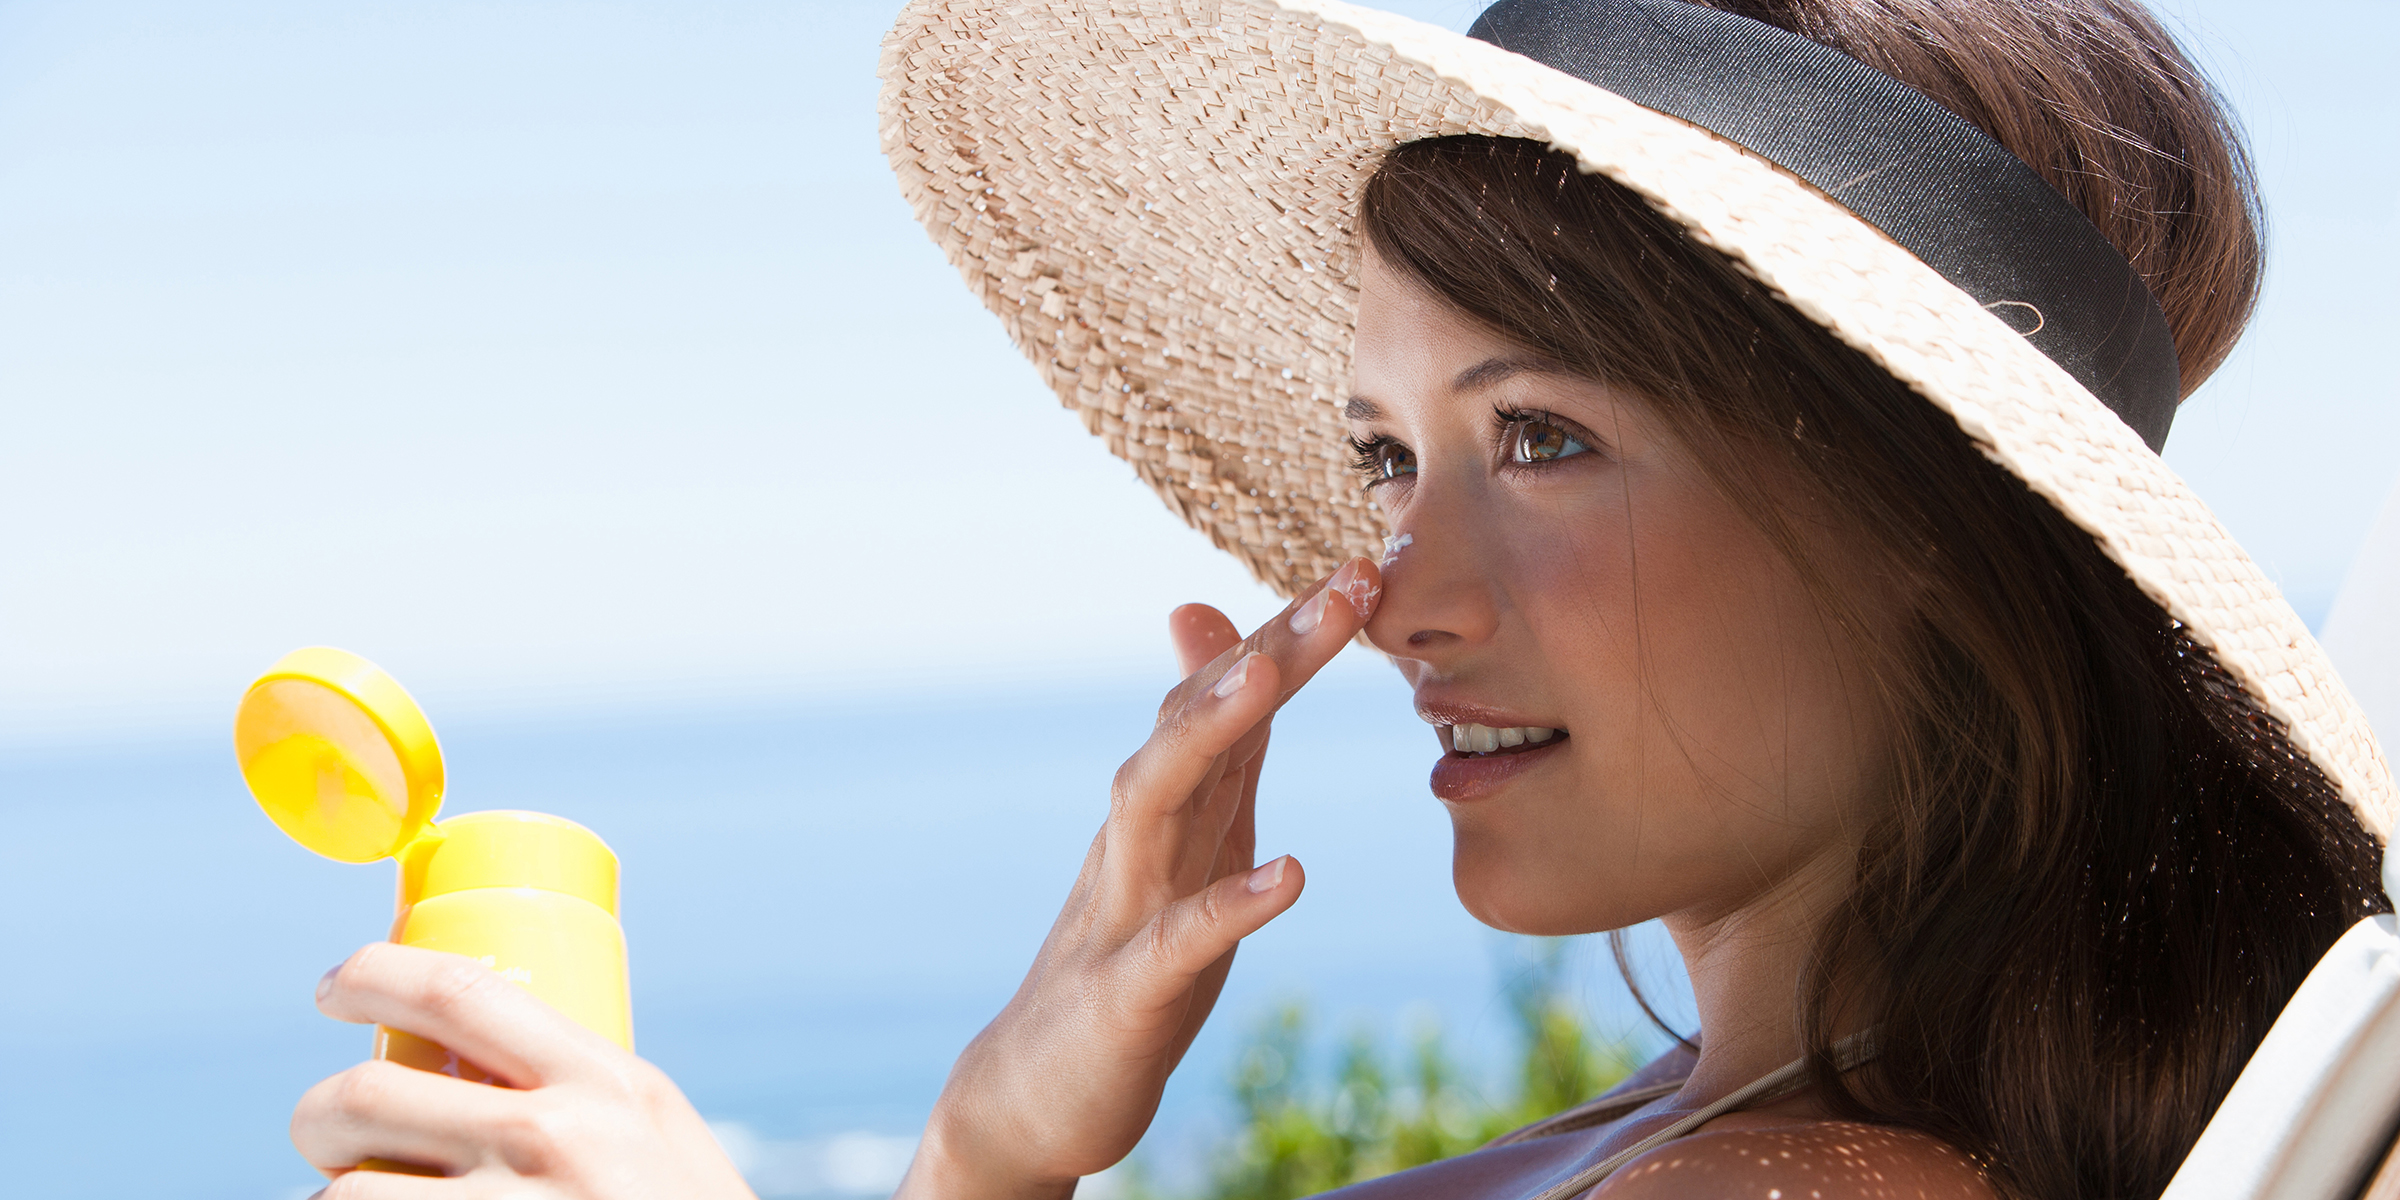 How to apply sunscreen to your face: Common mistakes people make